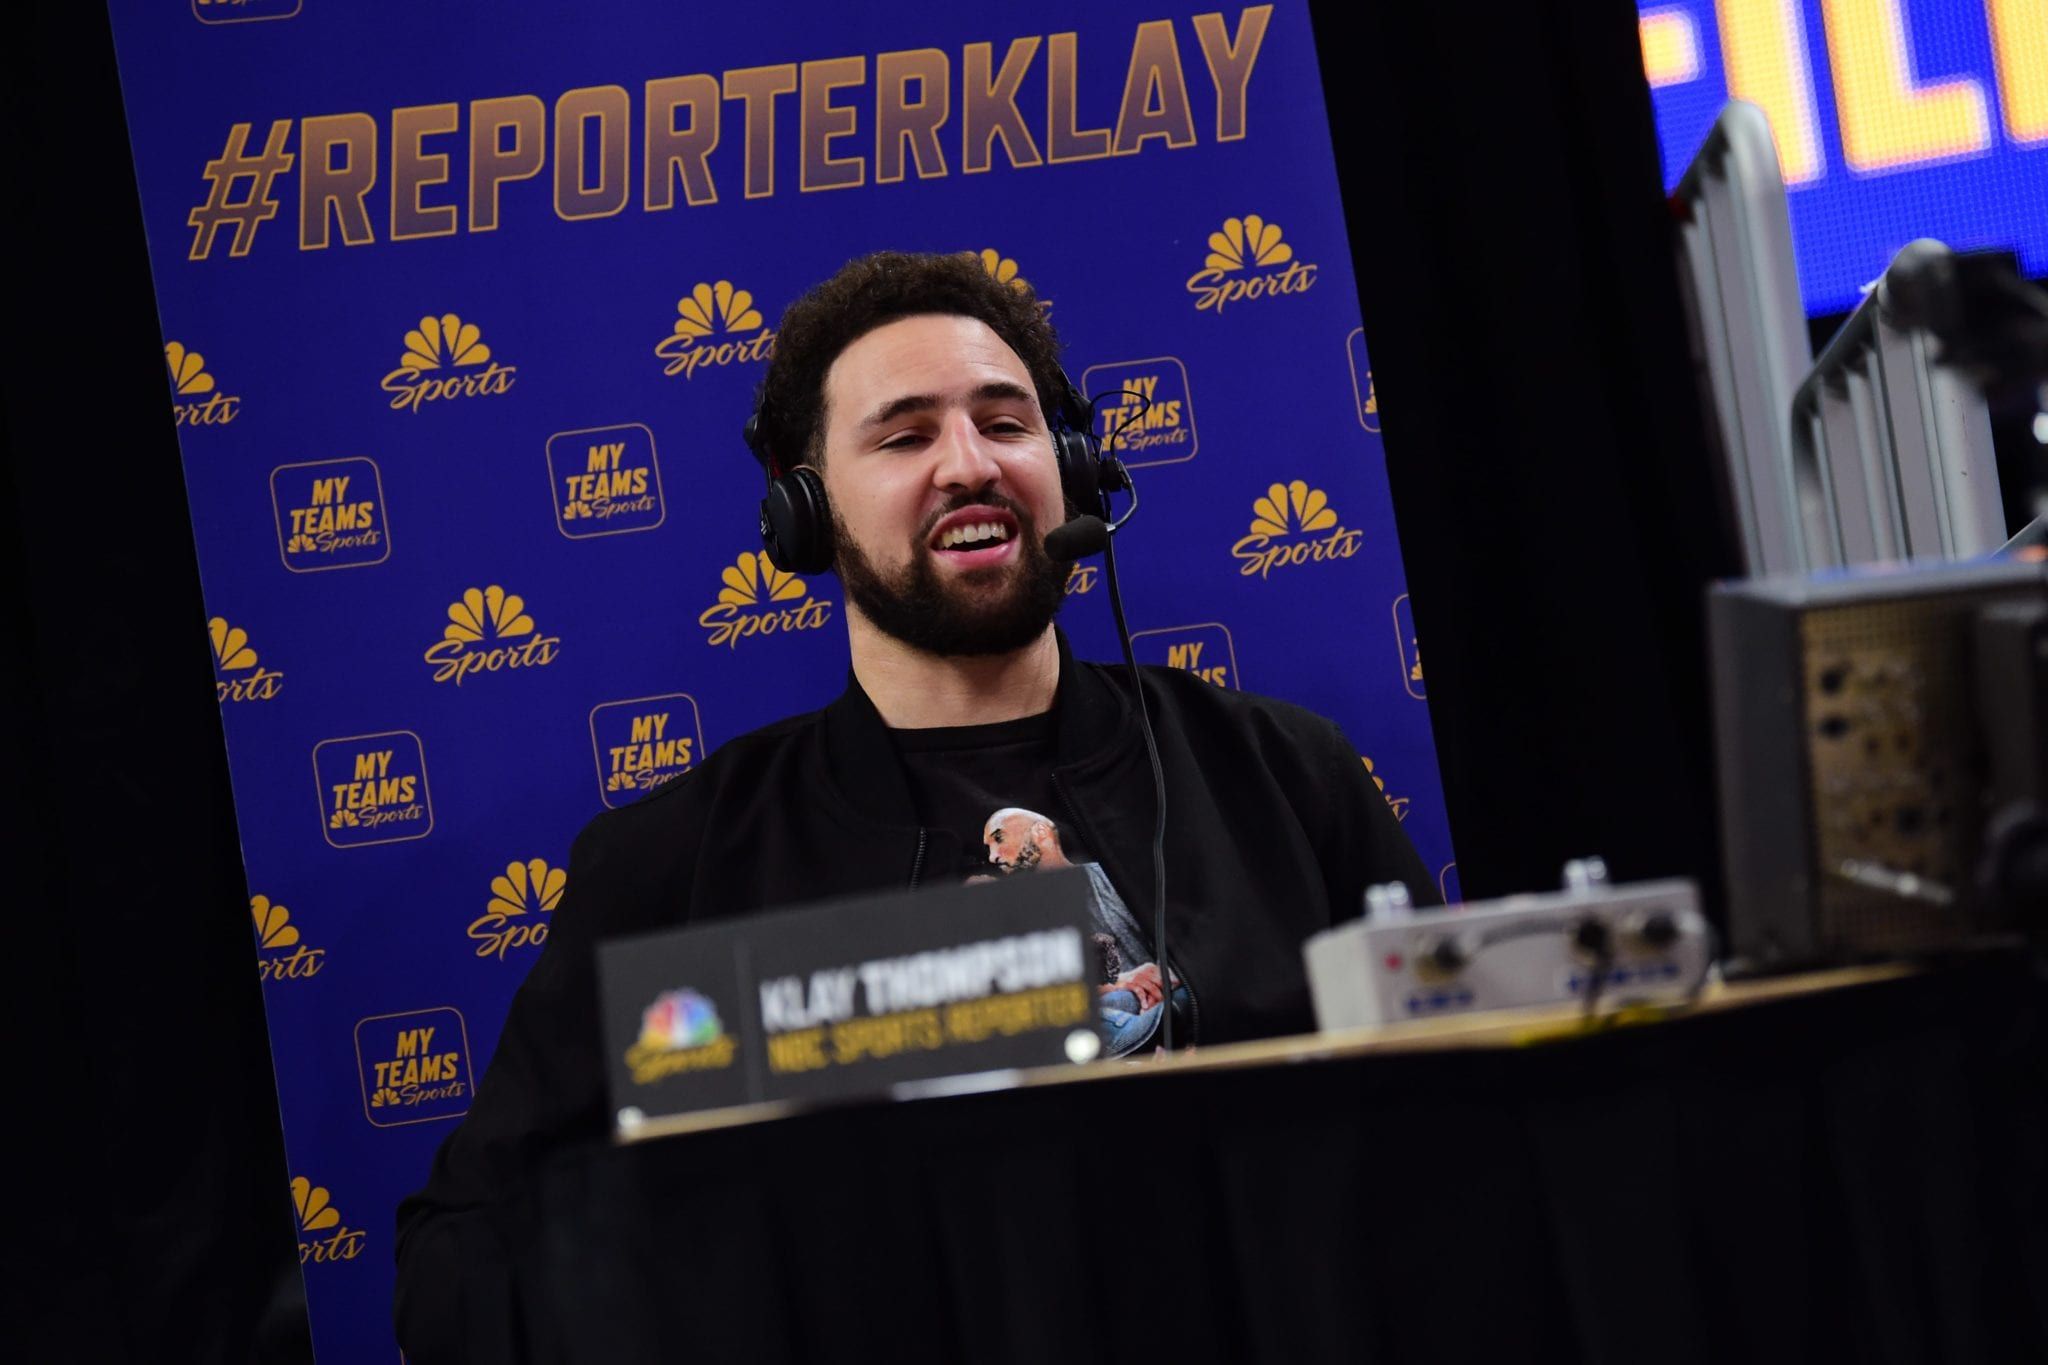 Klay Thompson Savagely Roasts 'Tough Guy' Pistons Player During Postgame Incident